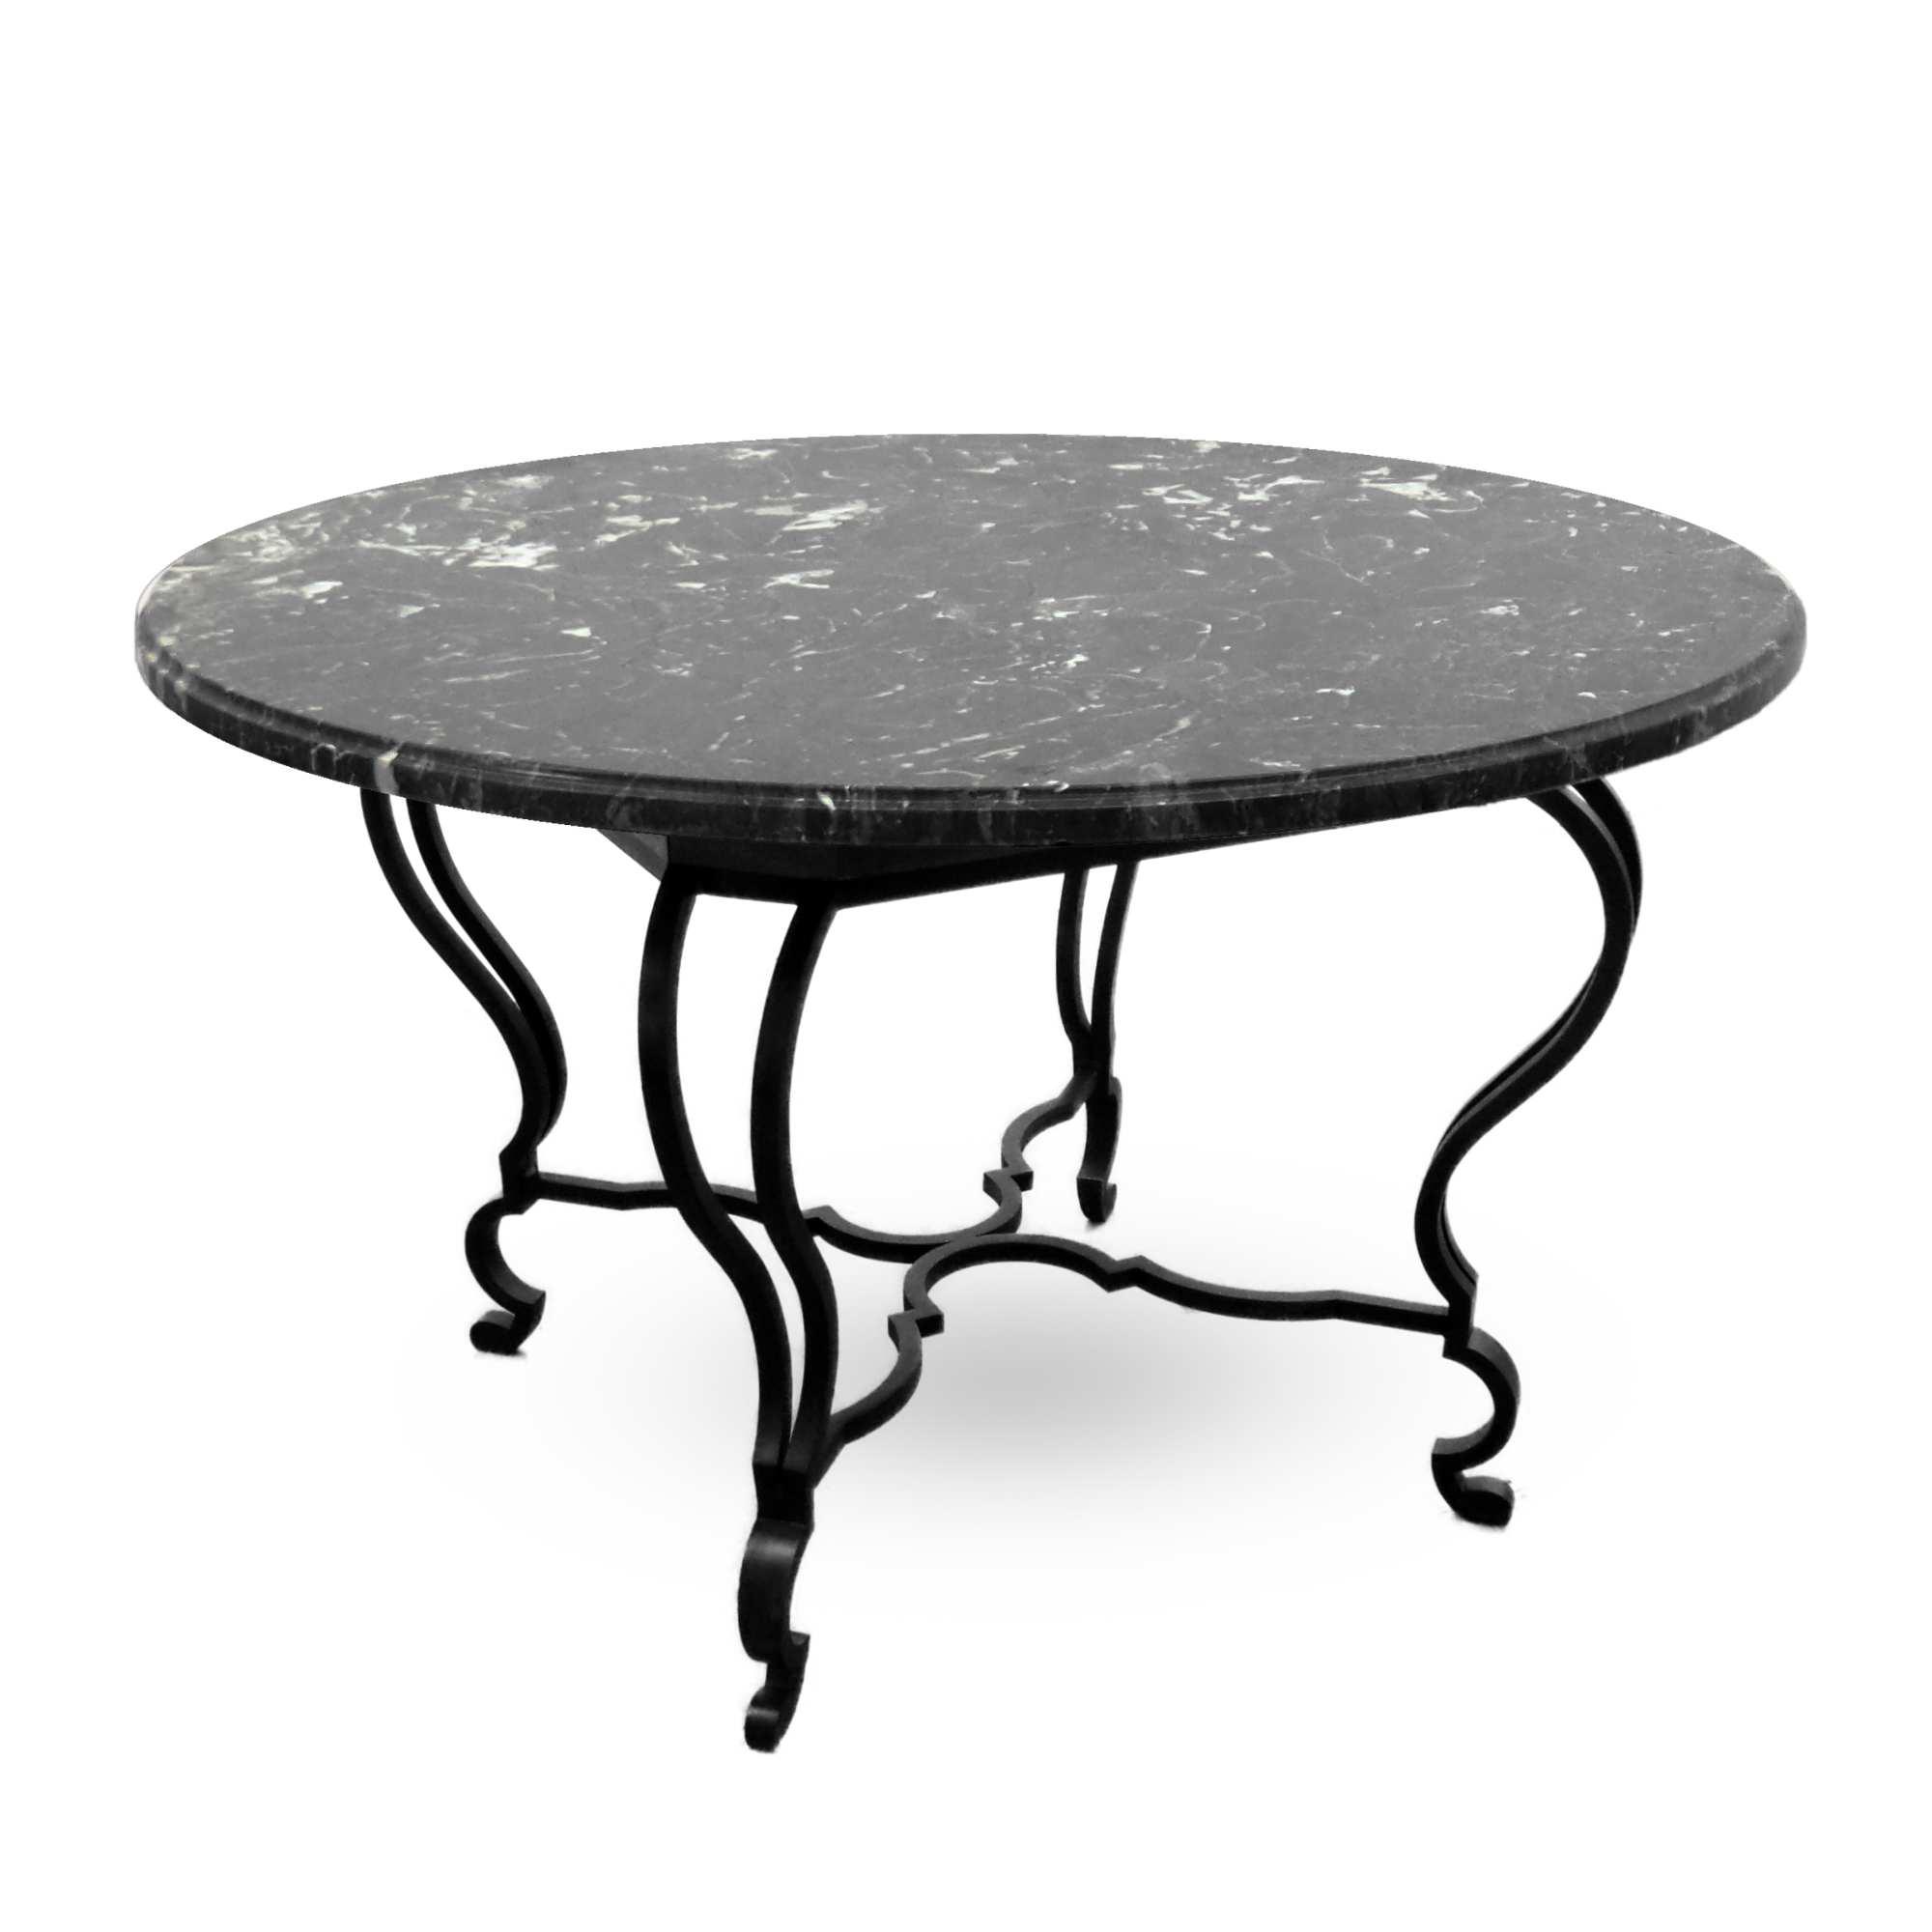 R1097-Dining-Table-Victoria-&-Son-Custom-Furniture-Bespoke-Antiques-Expanding-Metal-Base-Stone-Top-2.jpg